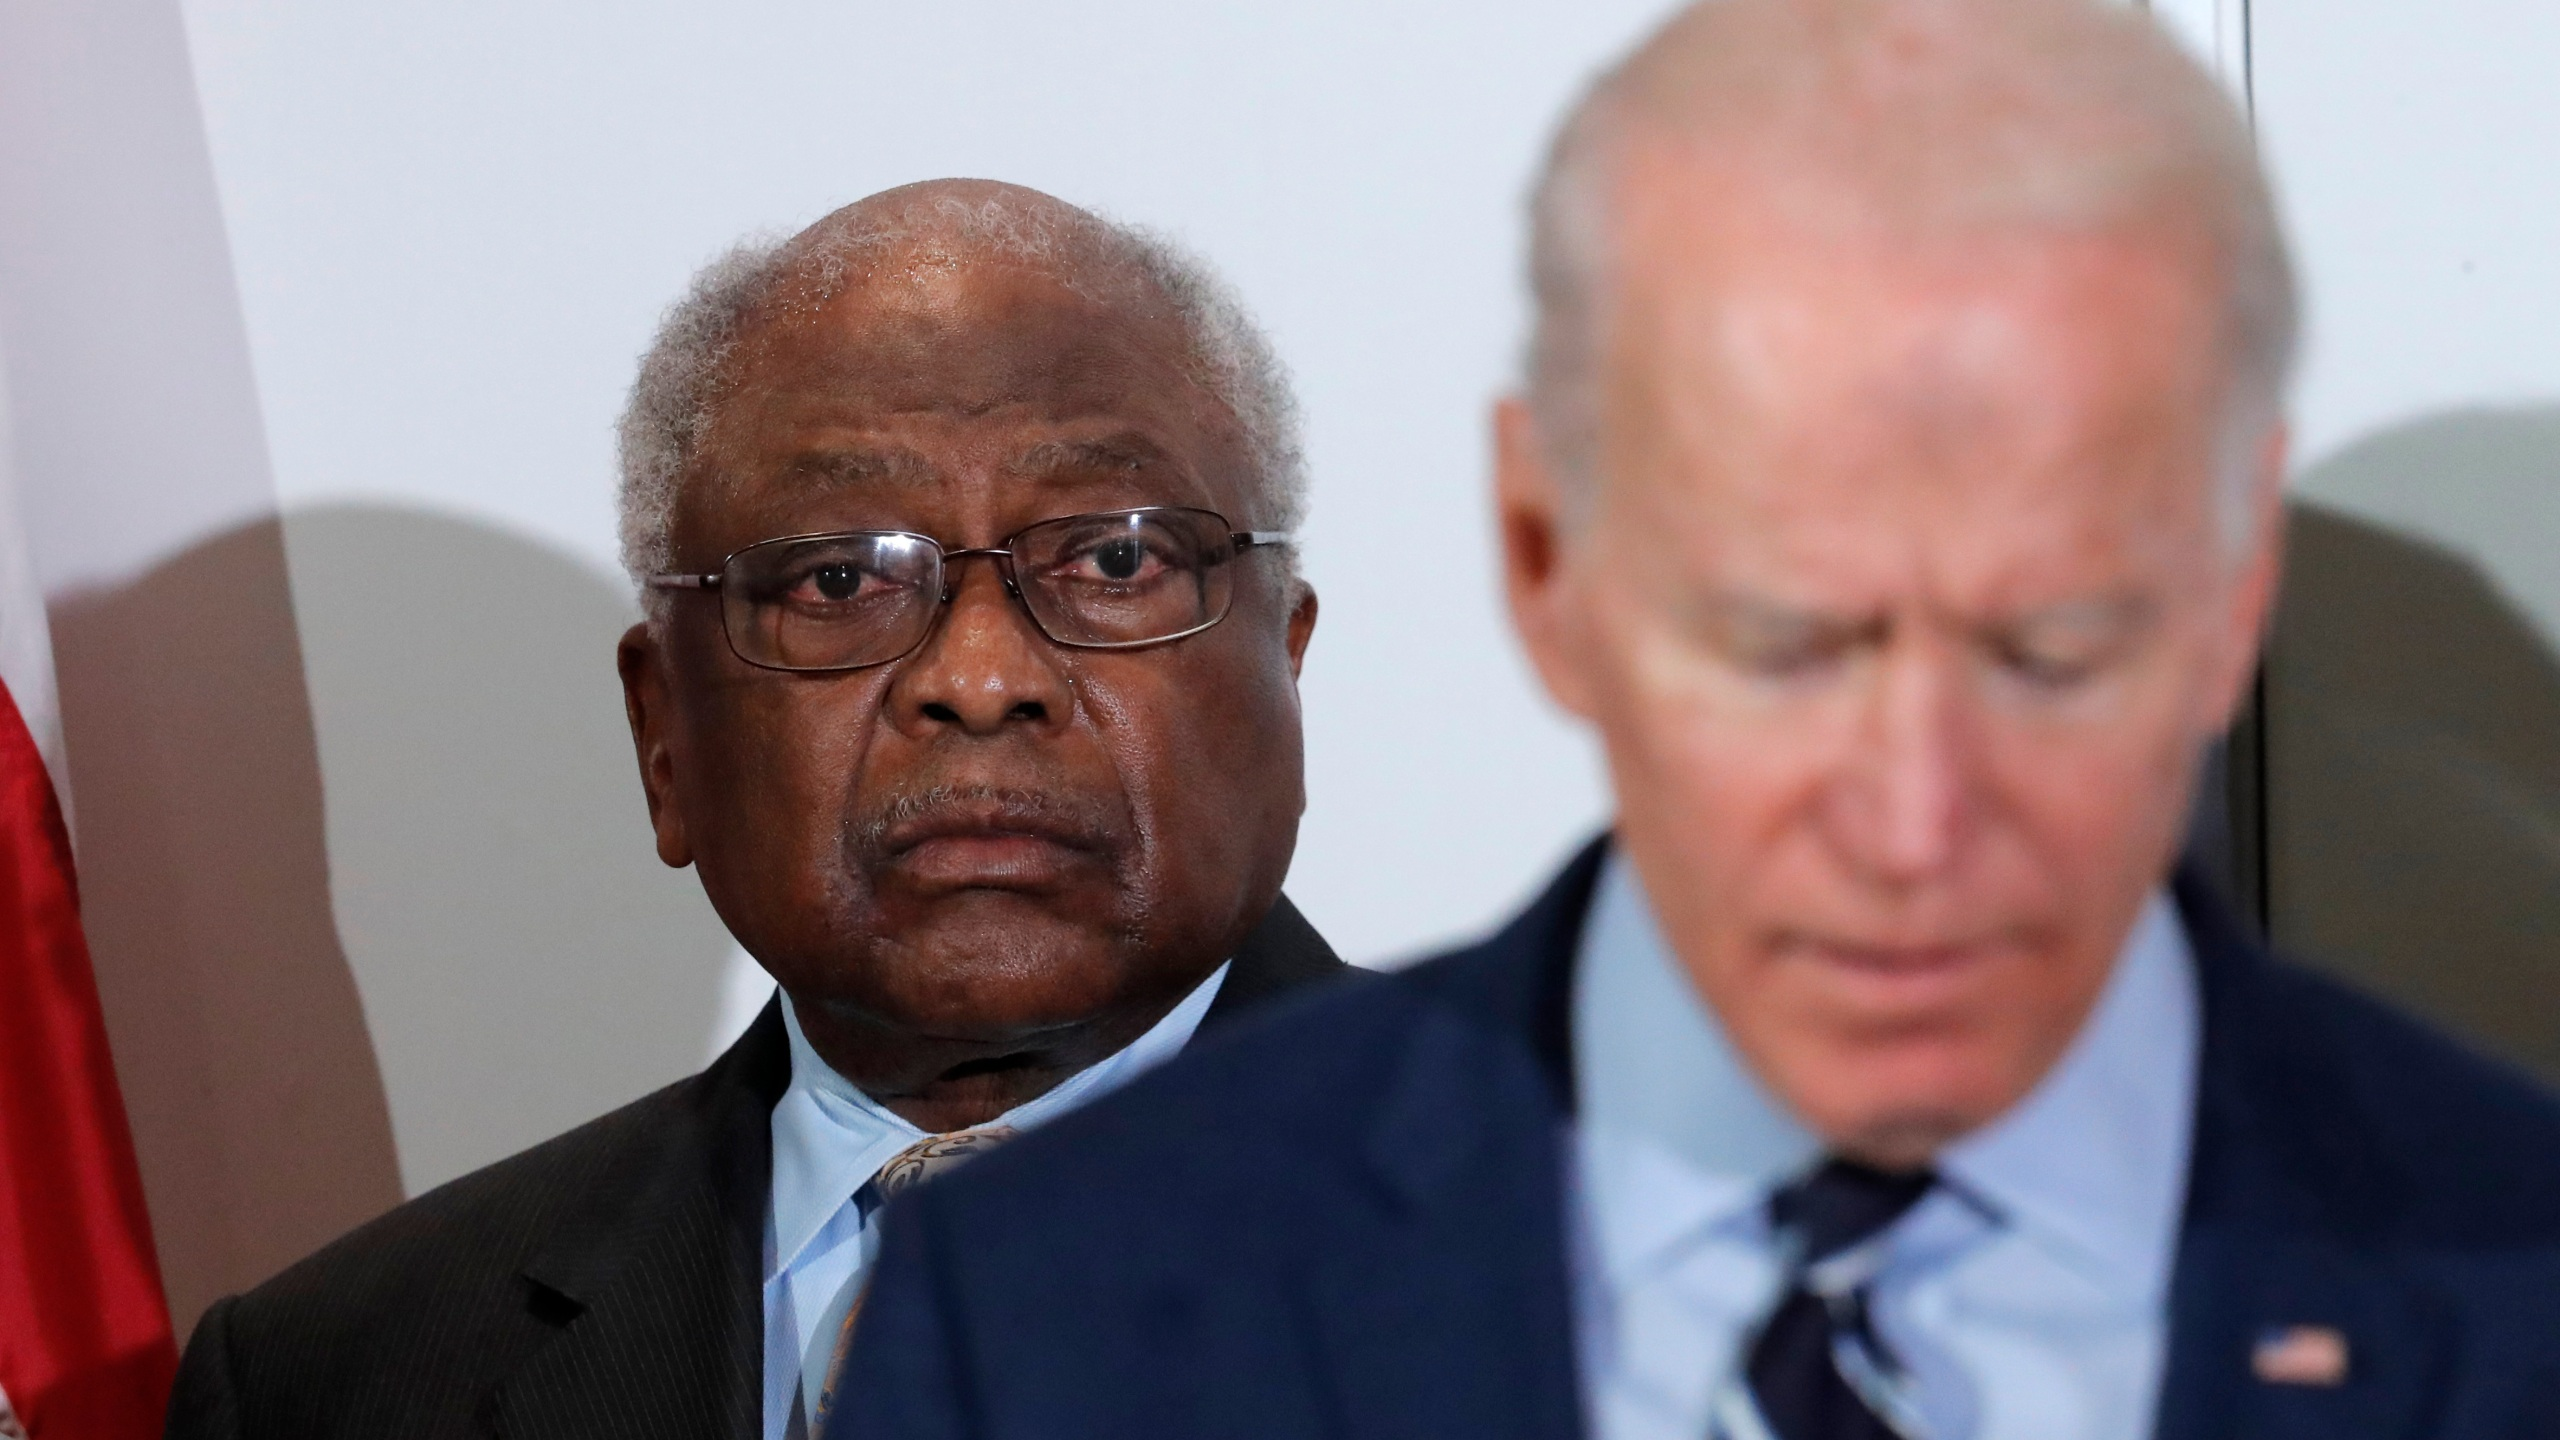 Jim Clyburn, Joe Biden